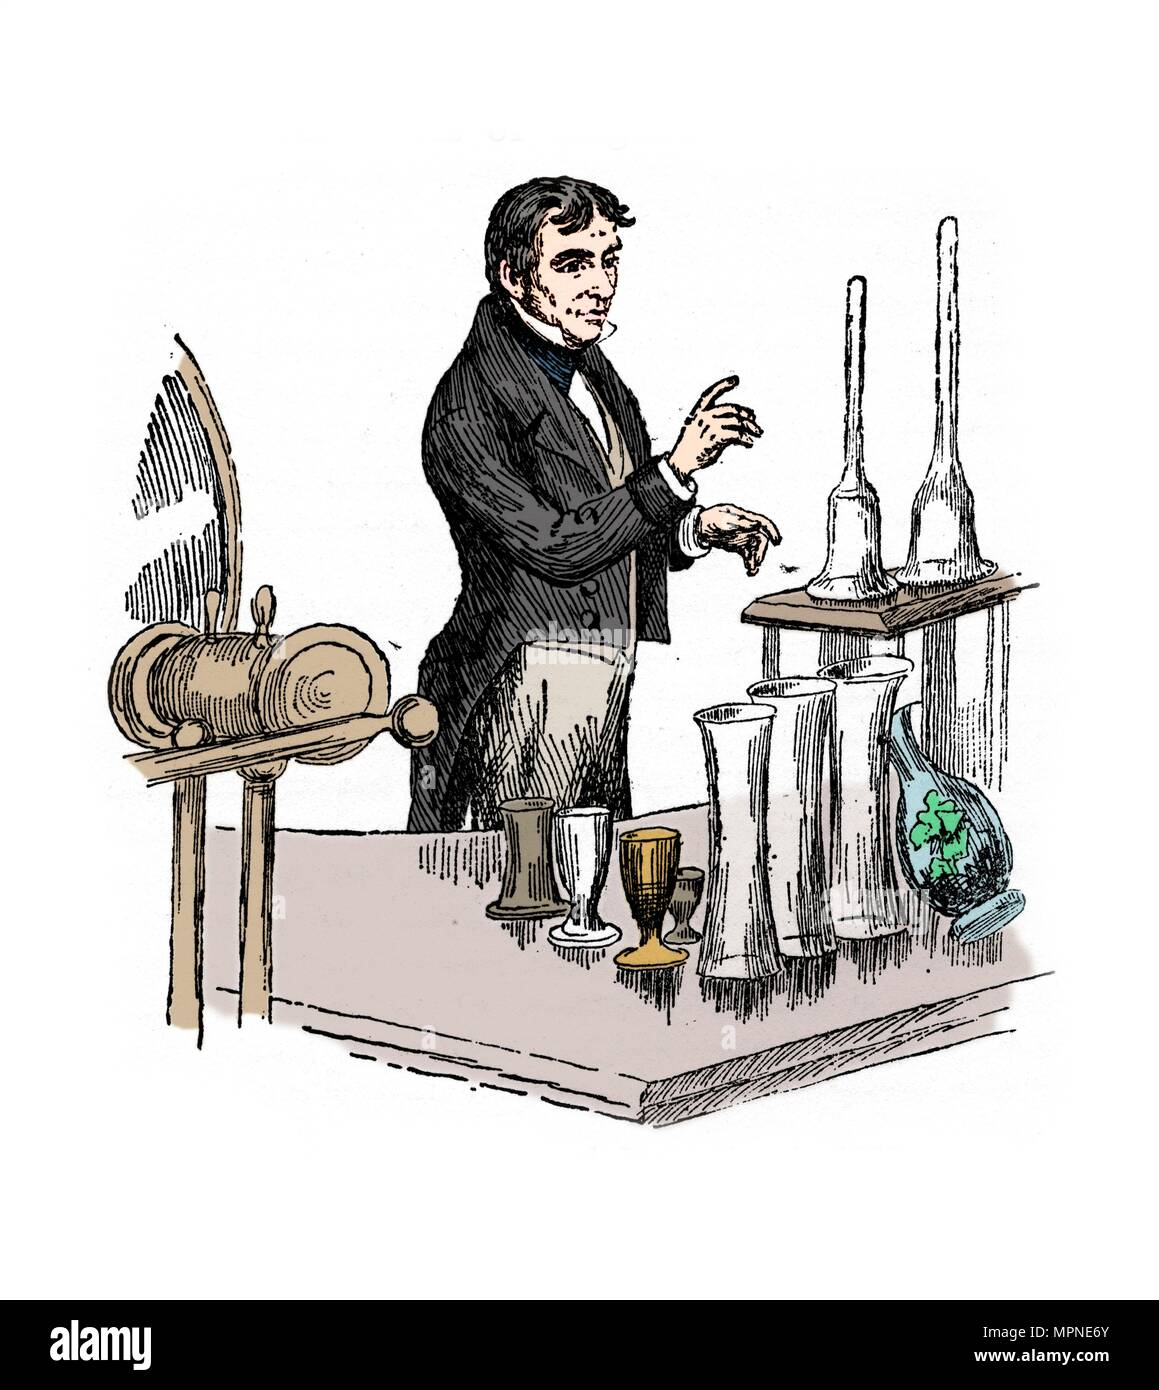 Michael Faraday lecturing at the Royal Institution, London, 1835 (20th century).  Artist: Unknown. - Stock Image